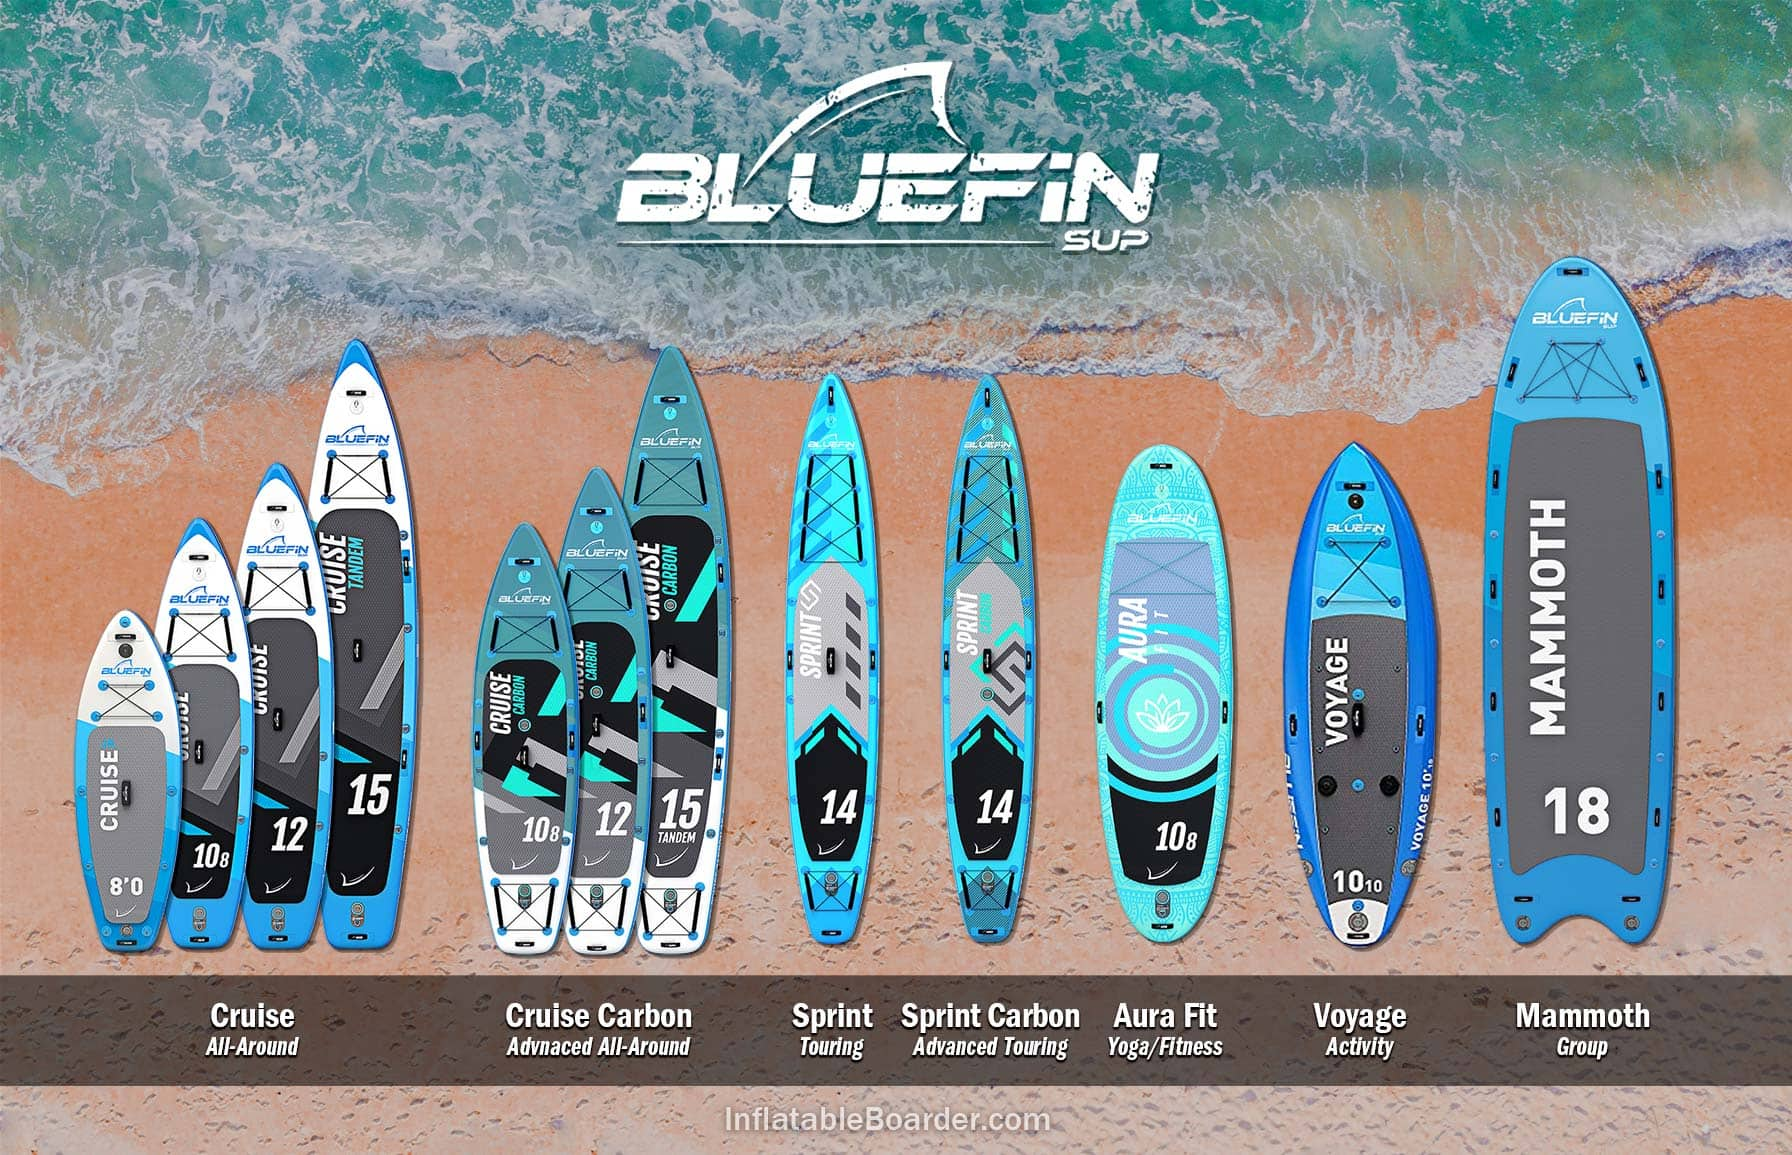 Bluefin SUP inflatable paddle boards compared. Includes Cruise, Cruise Carbon, Sprint, Sprint Carbon, Aura Fit, Voyage, and Mammoth boards.